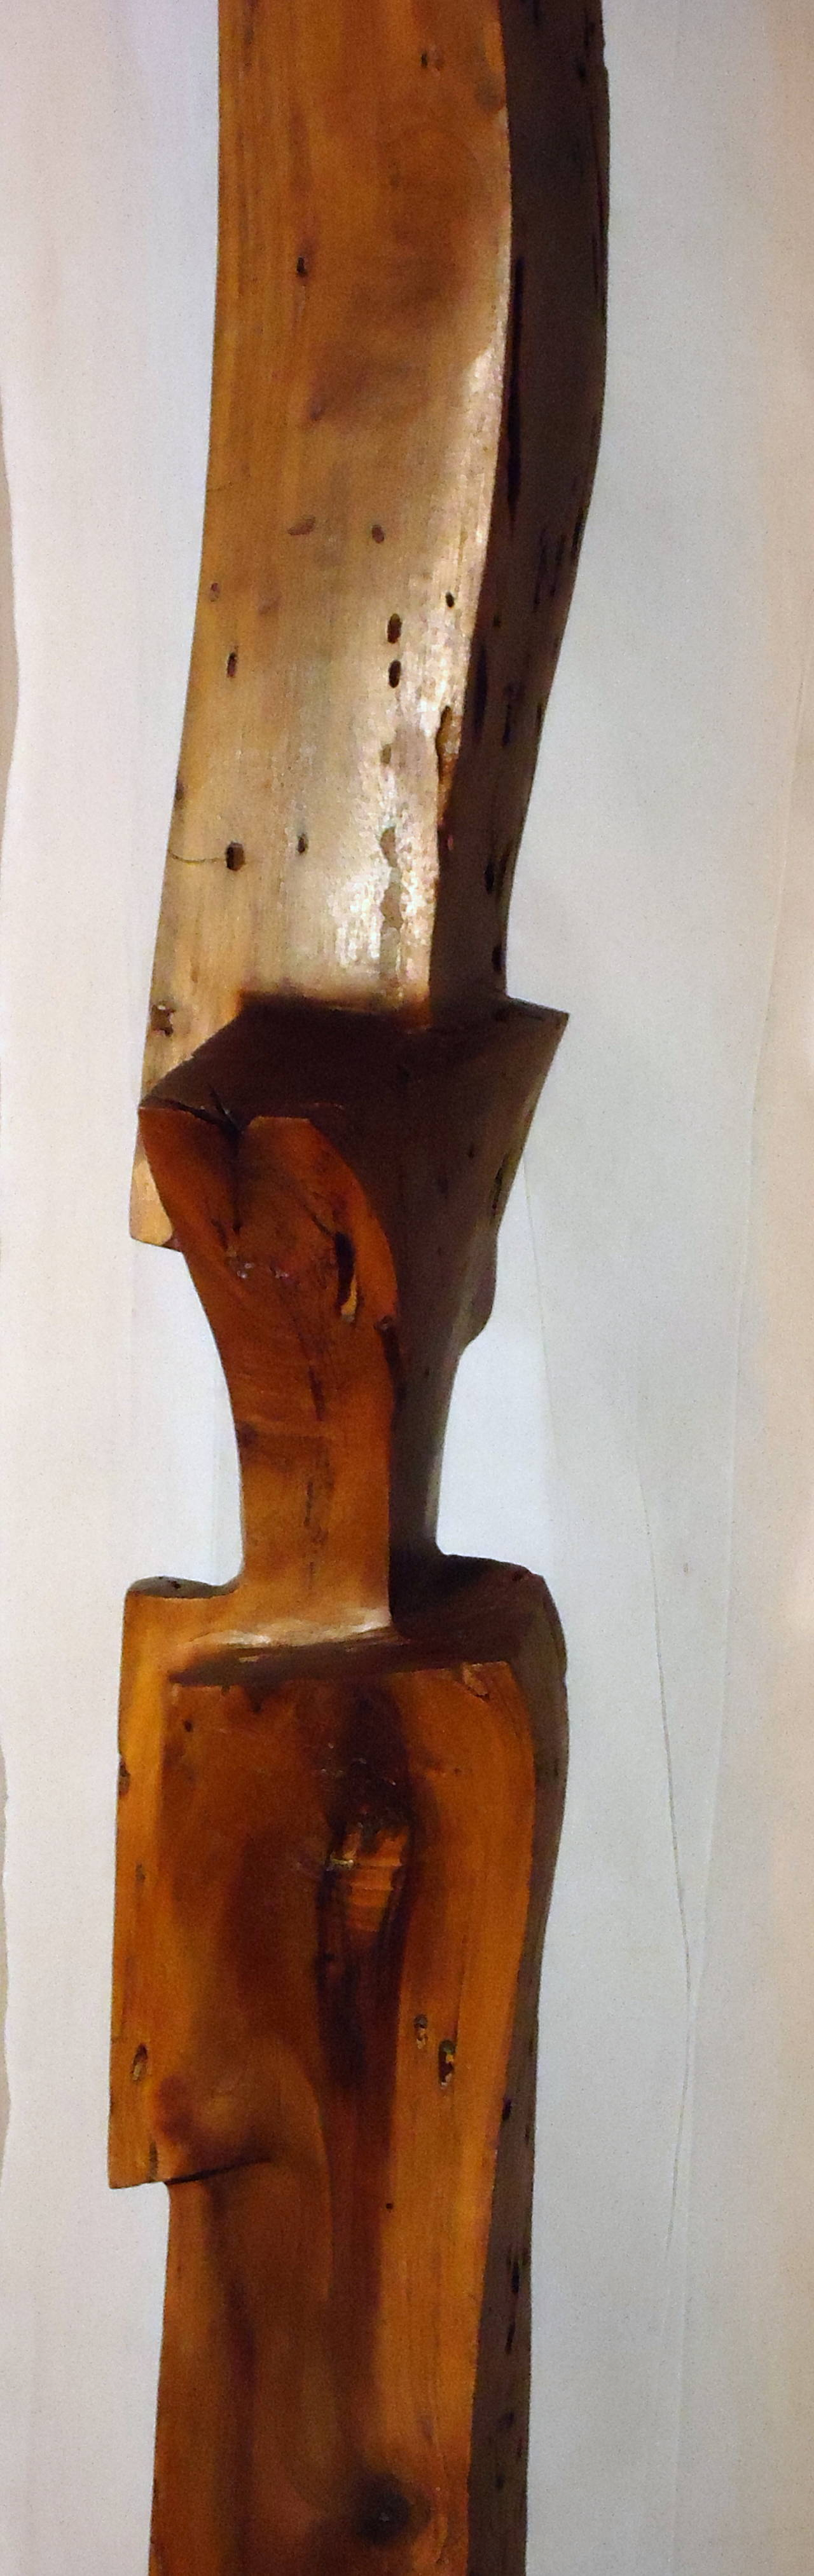 Hand-Carved Studio Mesquite Stele in the Style of J. B. Blunk, circa 1970 For Sale 2